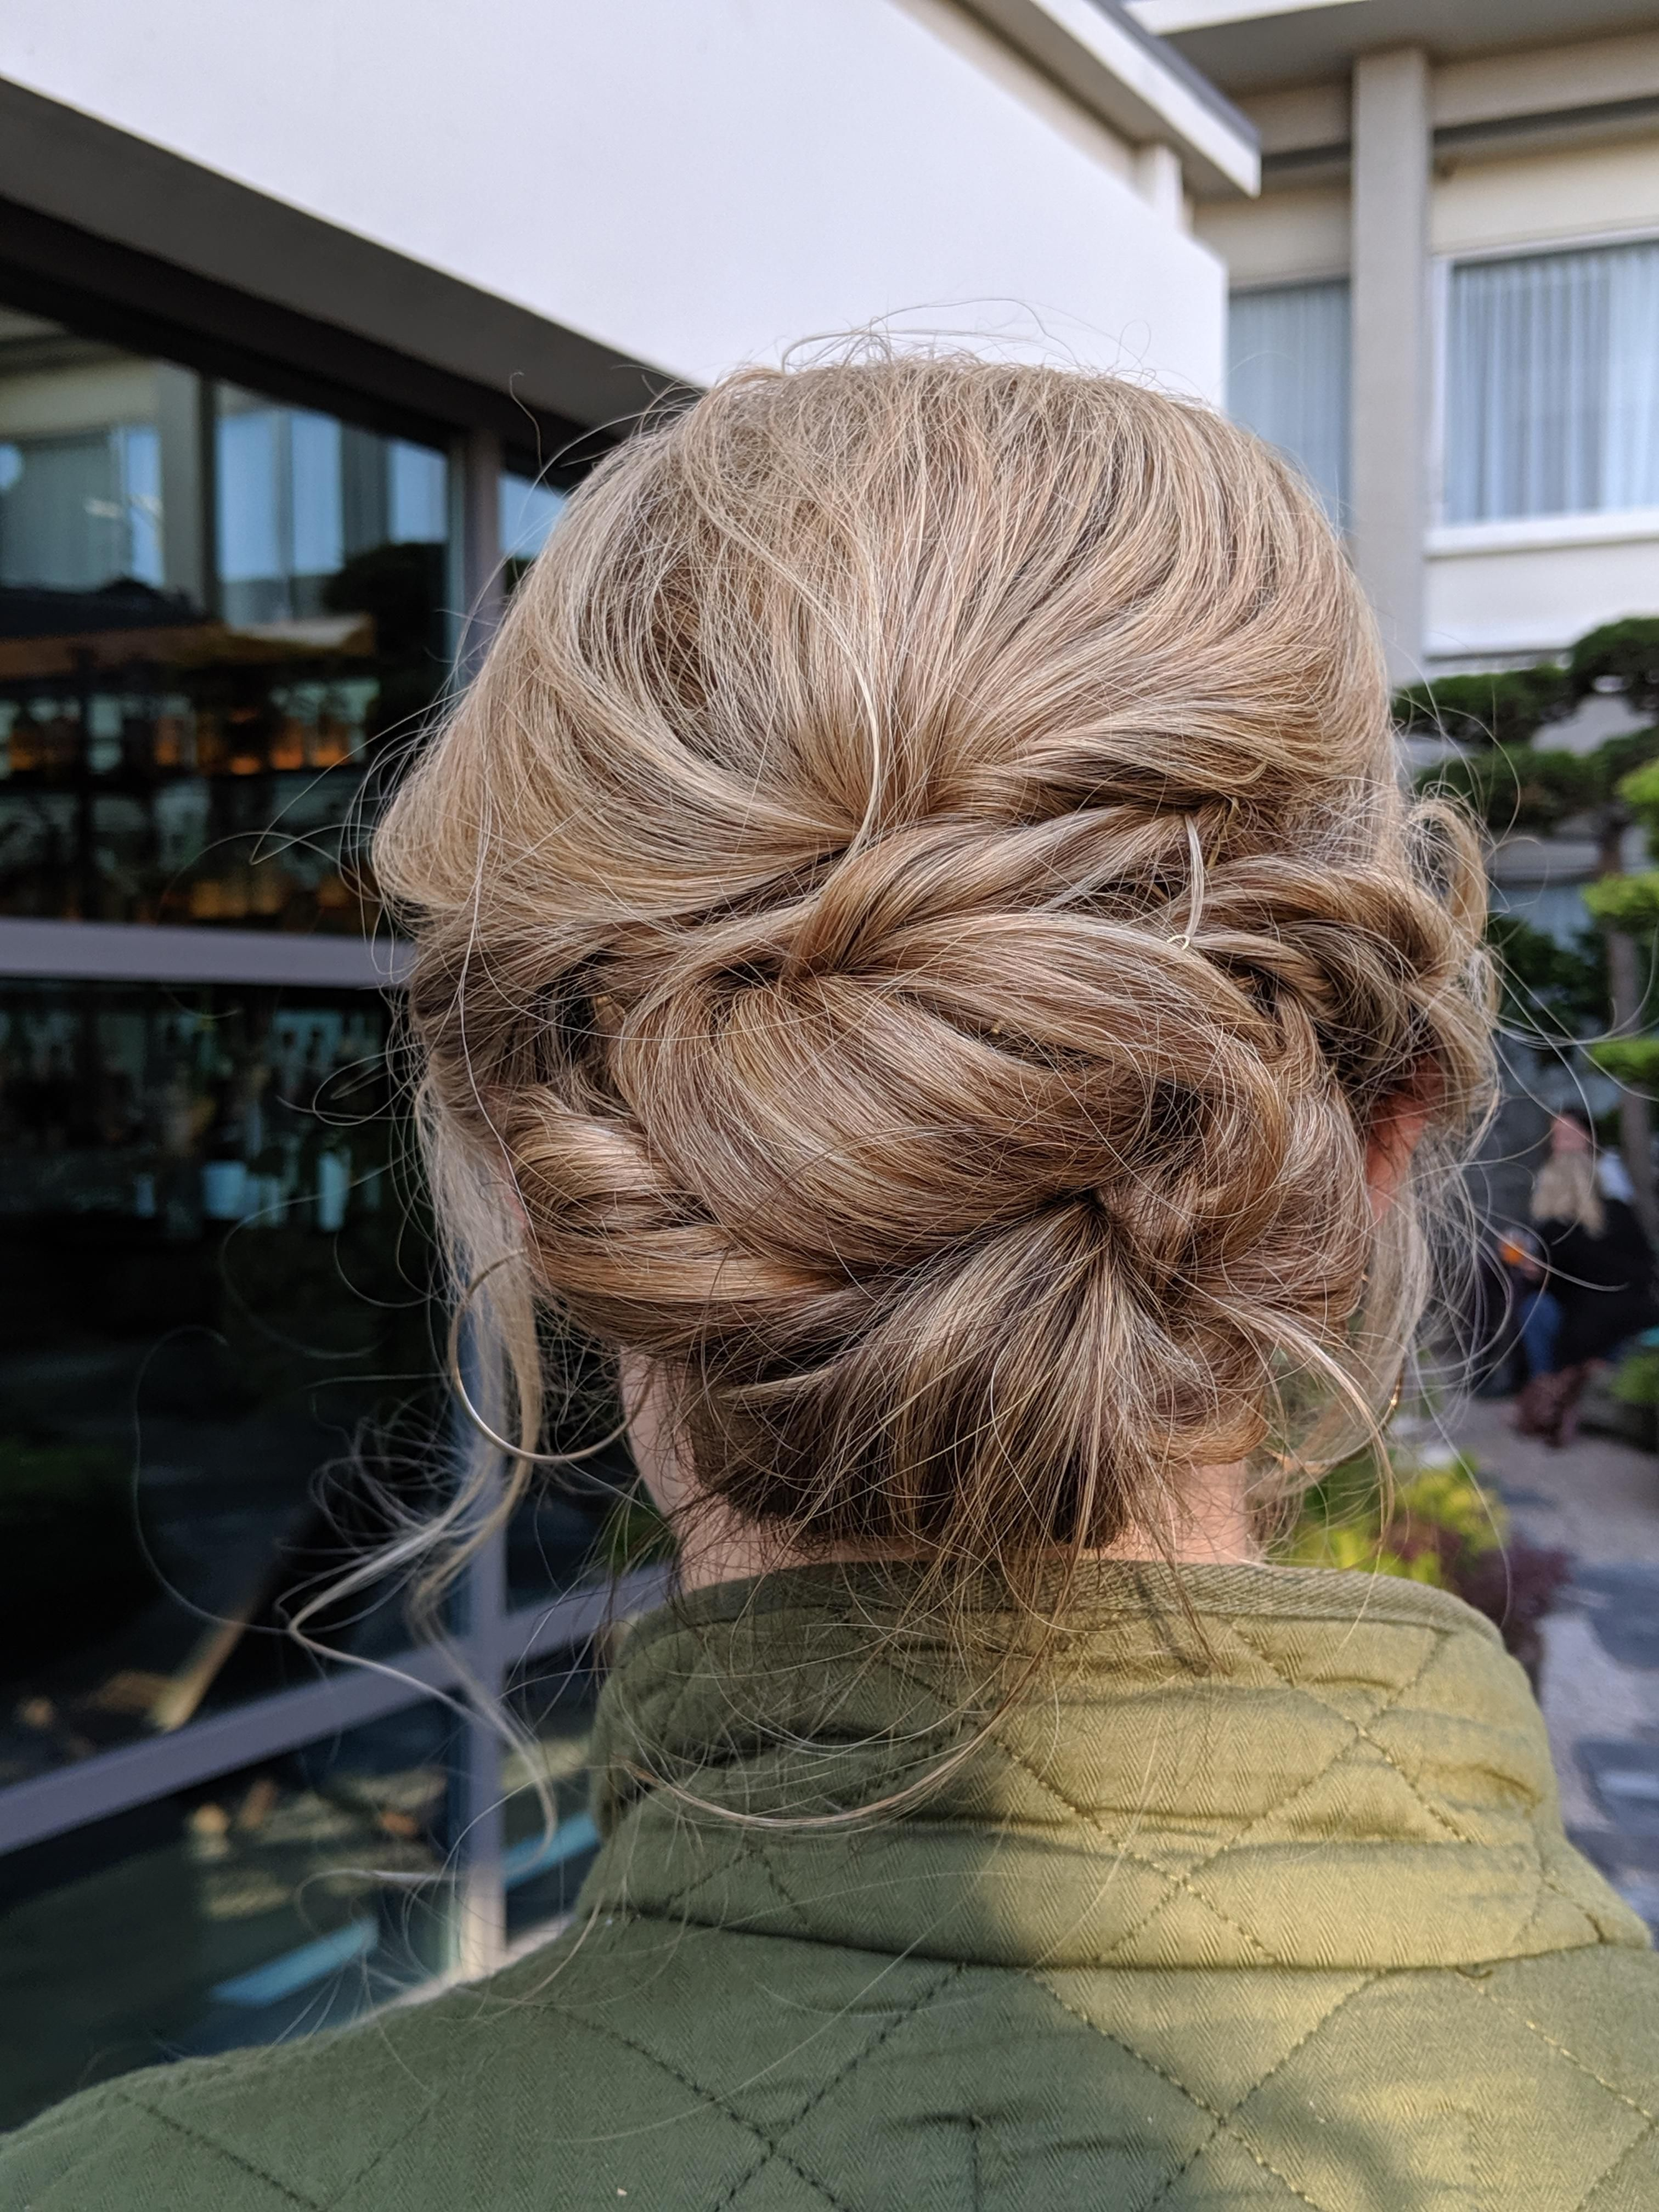 Pin by Claire Preising on wedding hair & beauty | Wedding hair beauty, Undone hair, Wedding ...